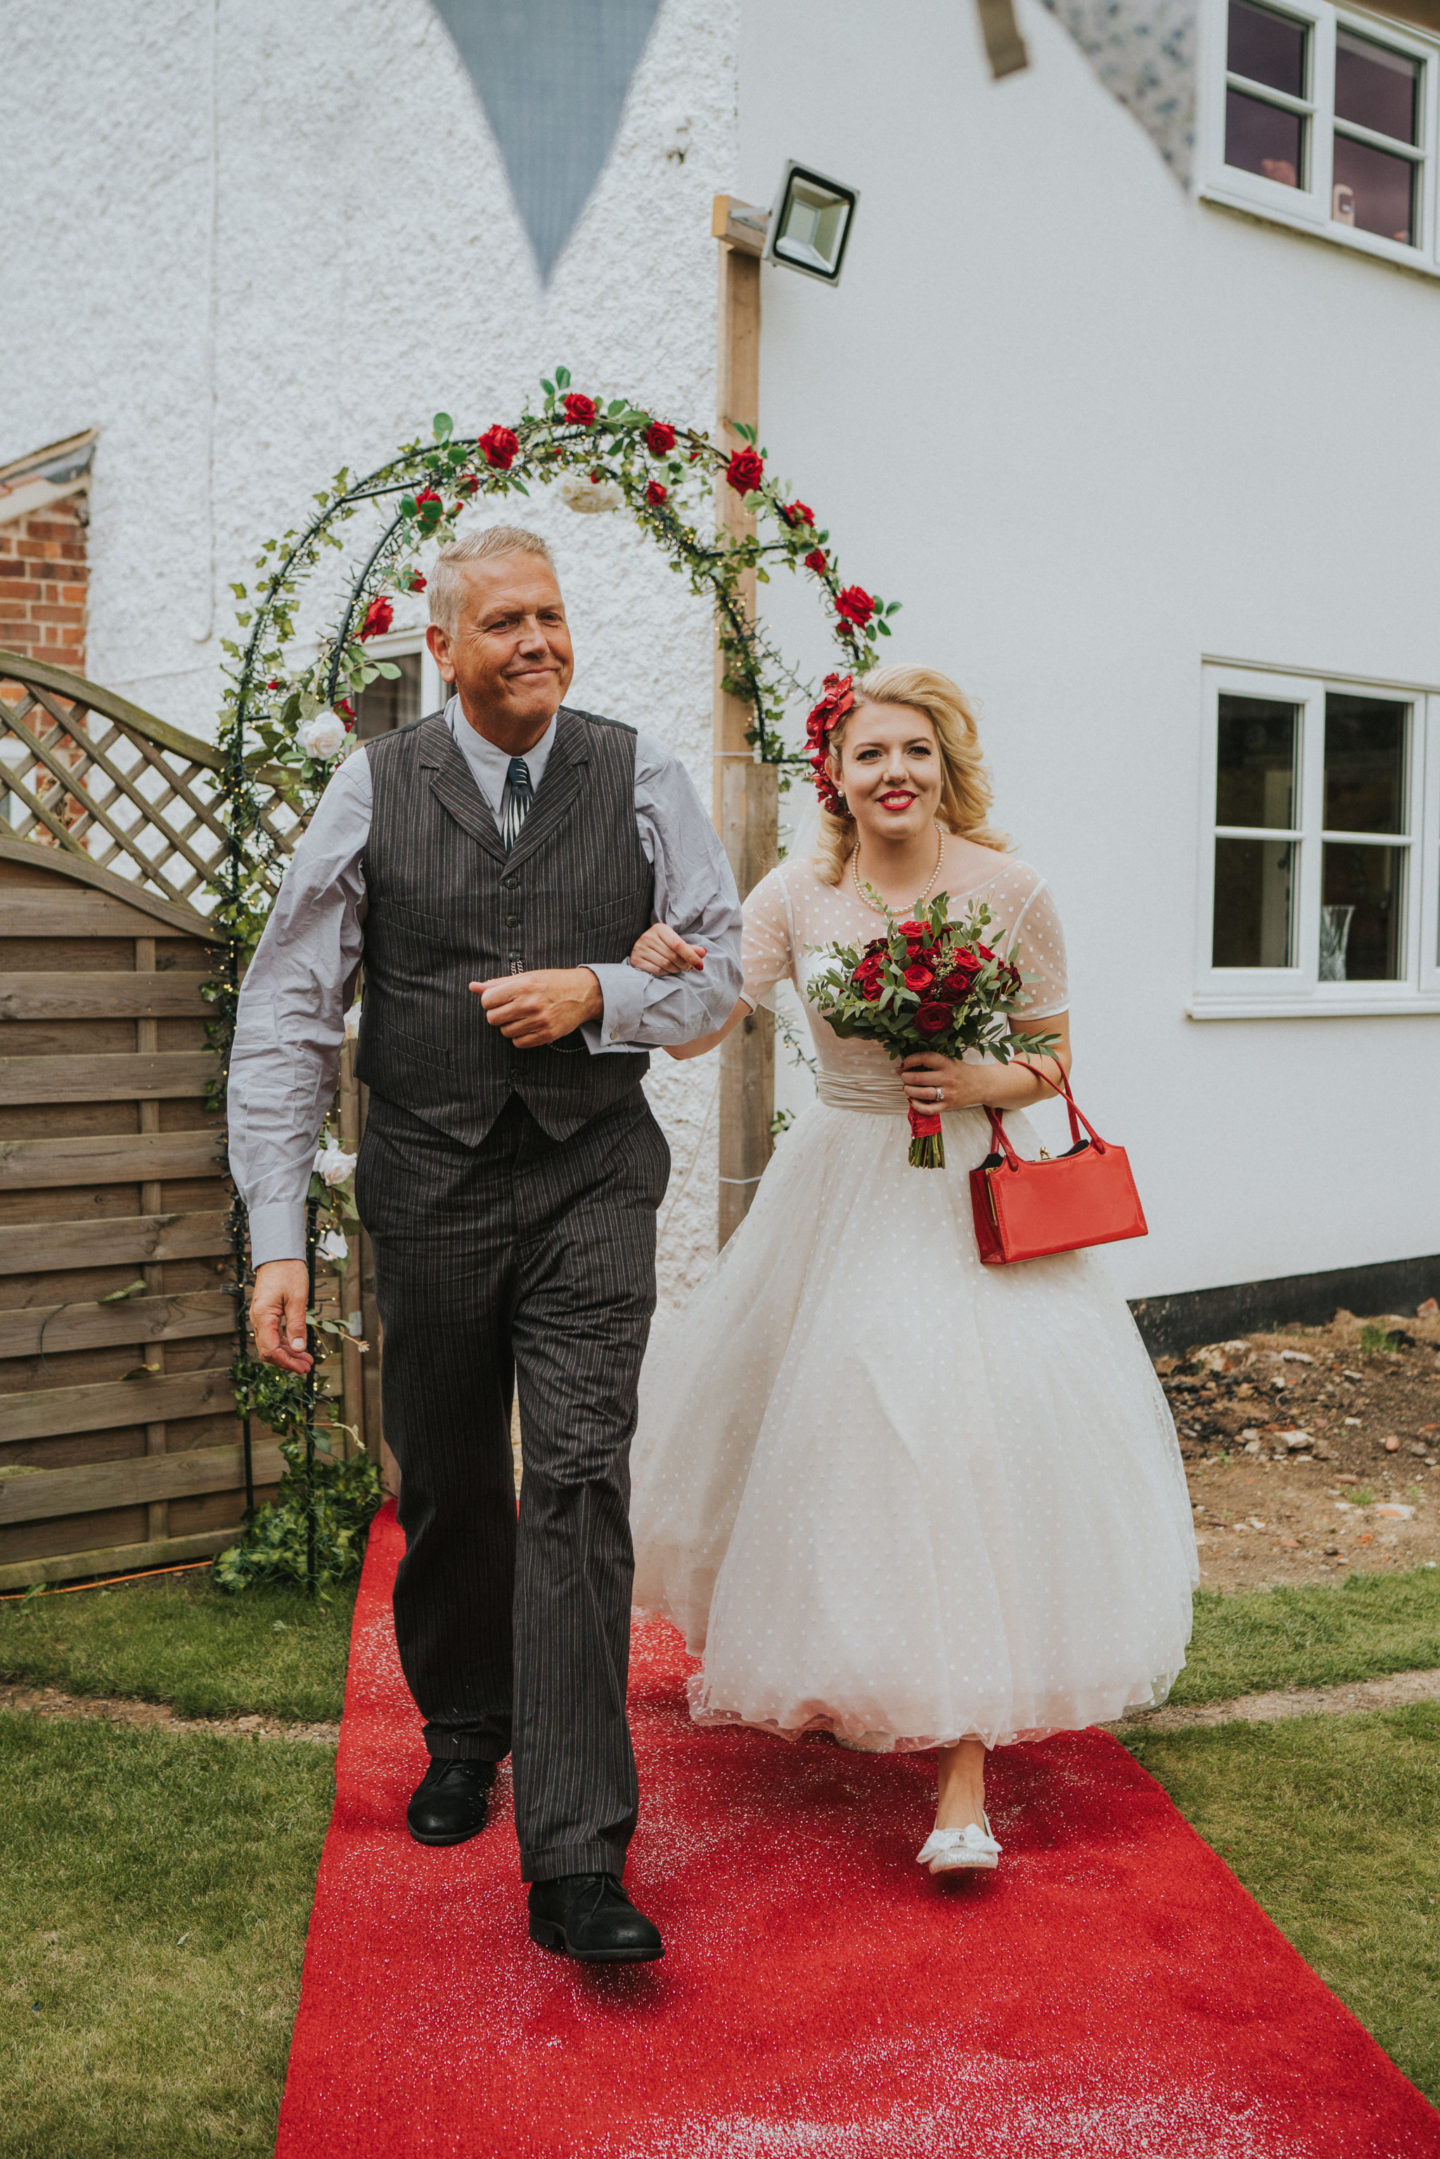 Intimate Ethical DIY Wedding With Vegan Food and Vintage Vibes